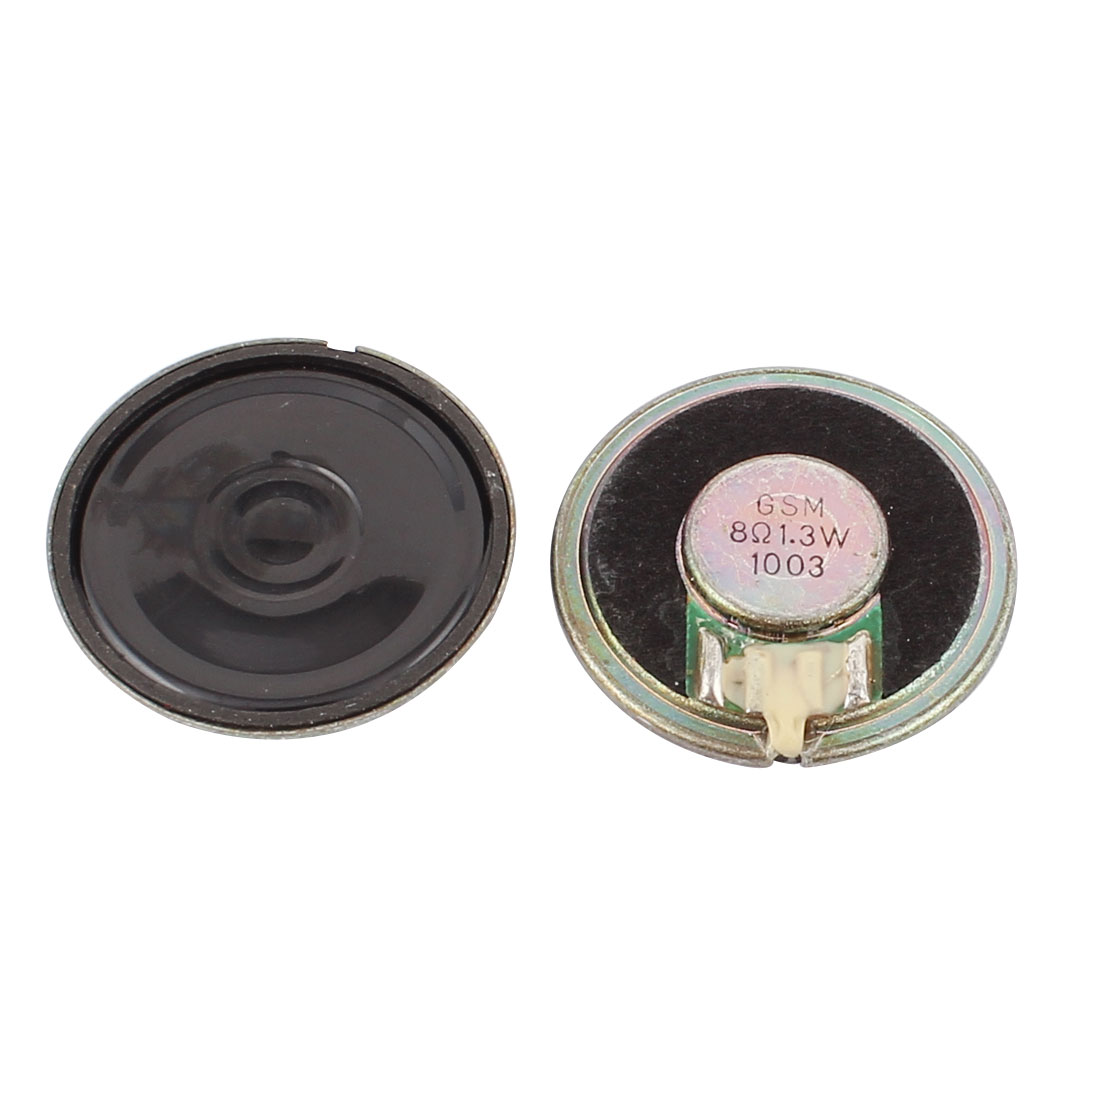 2 Pcs 36mm 8 Ohm 1.3W Metal Shell External Magnetic Speaker Loudspeaker Gold Tone